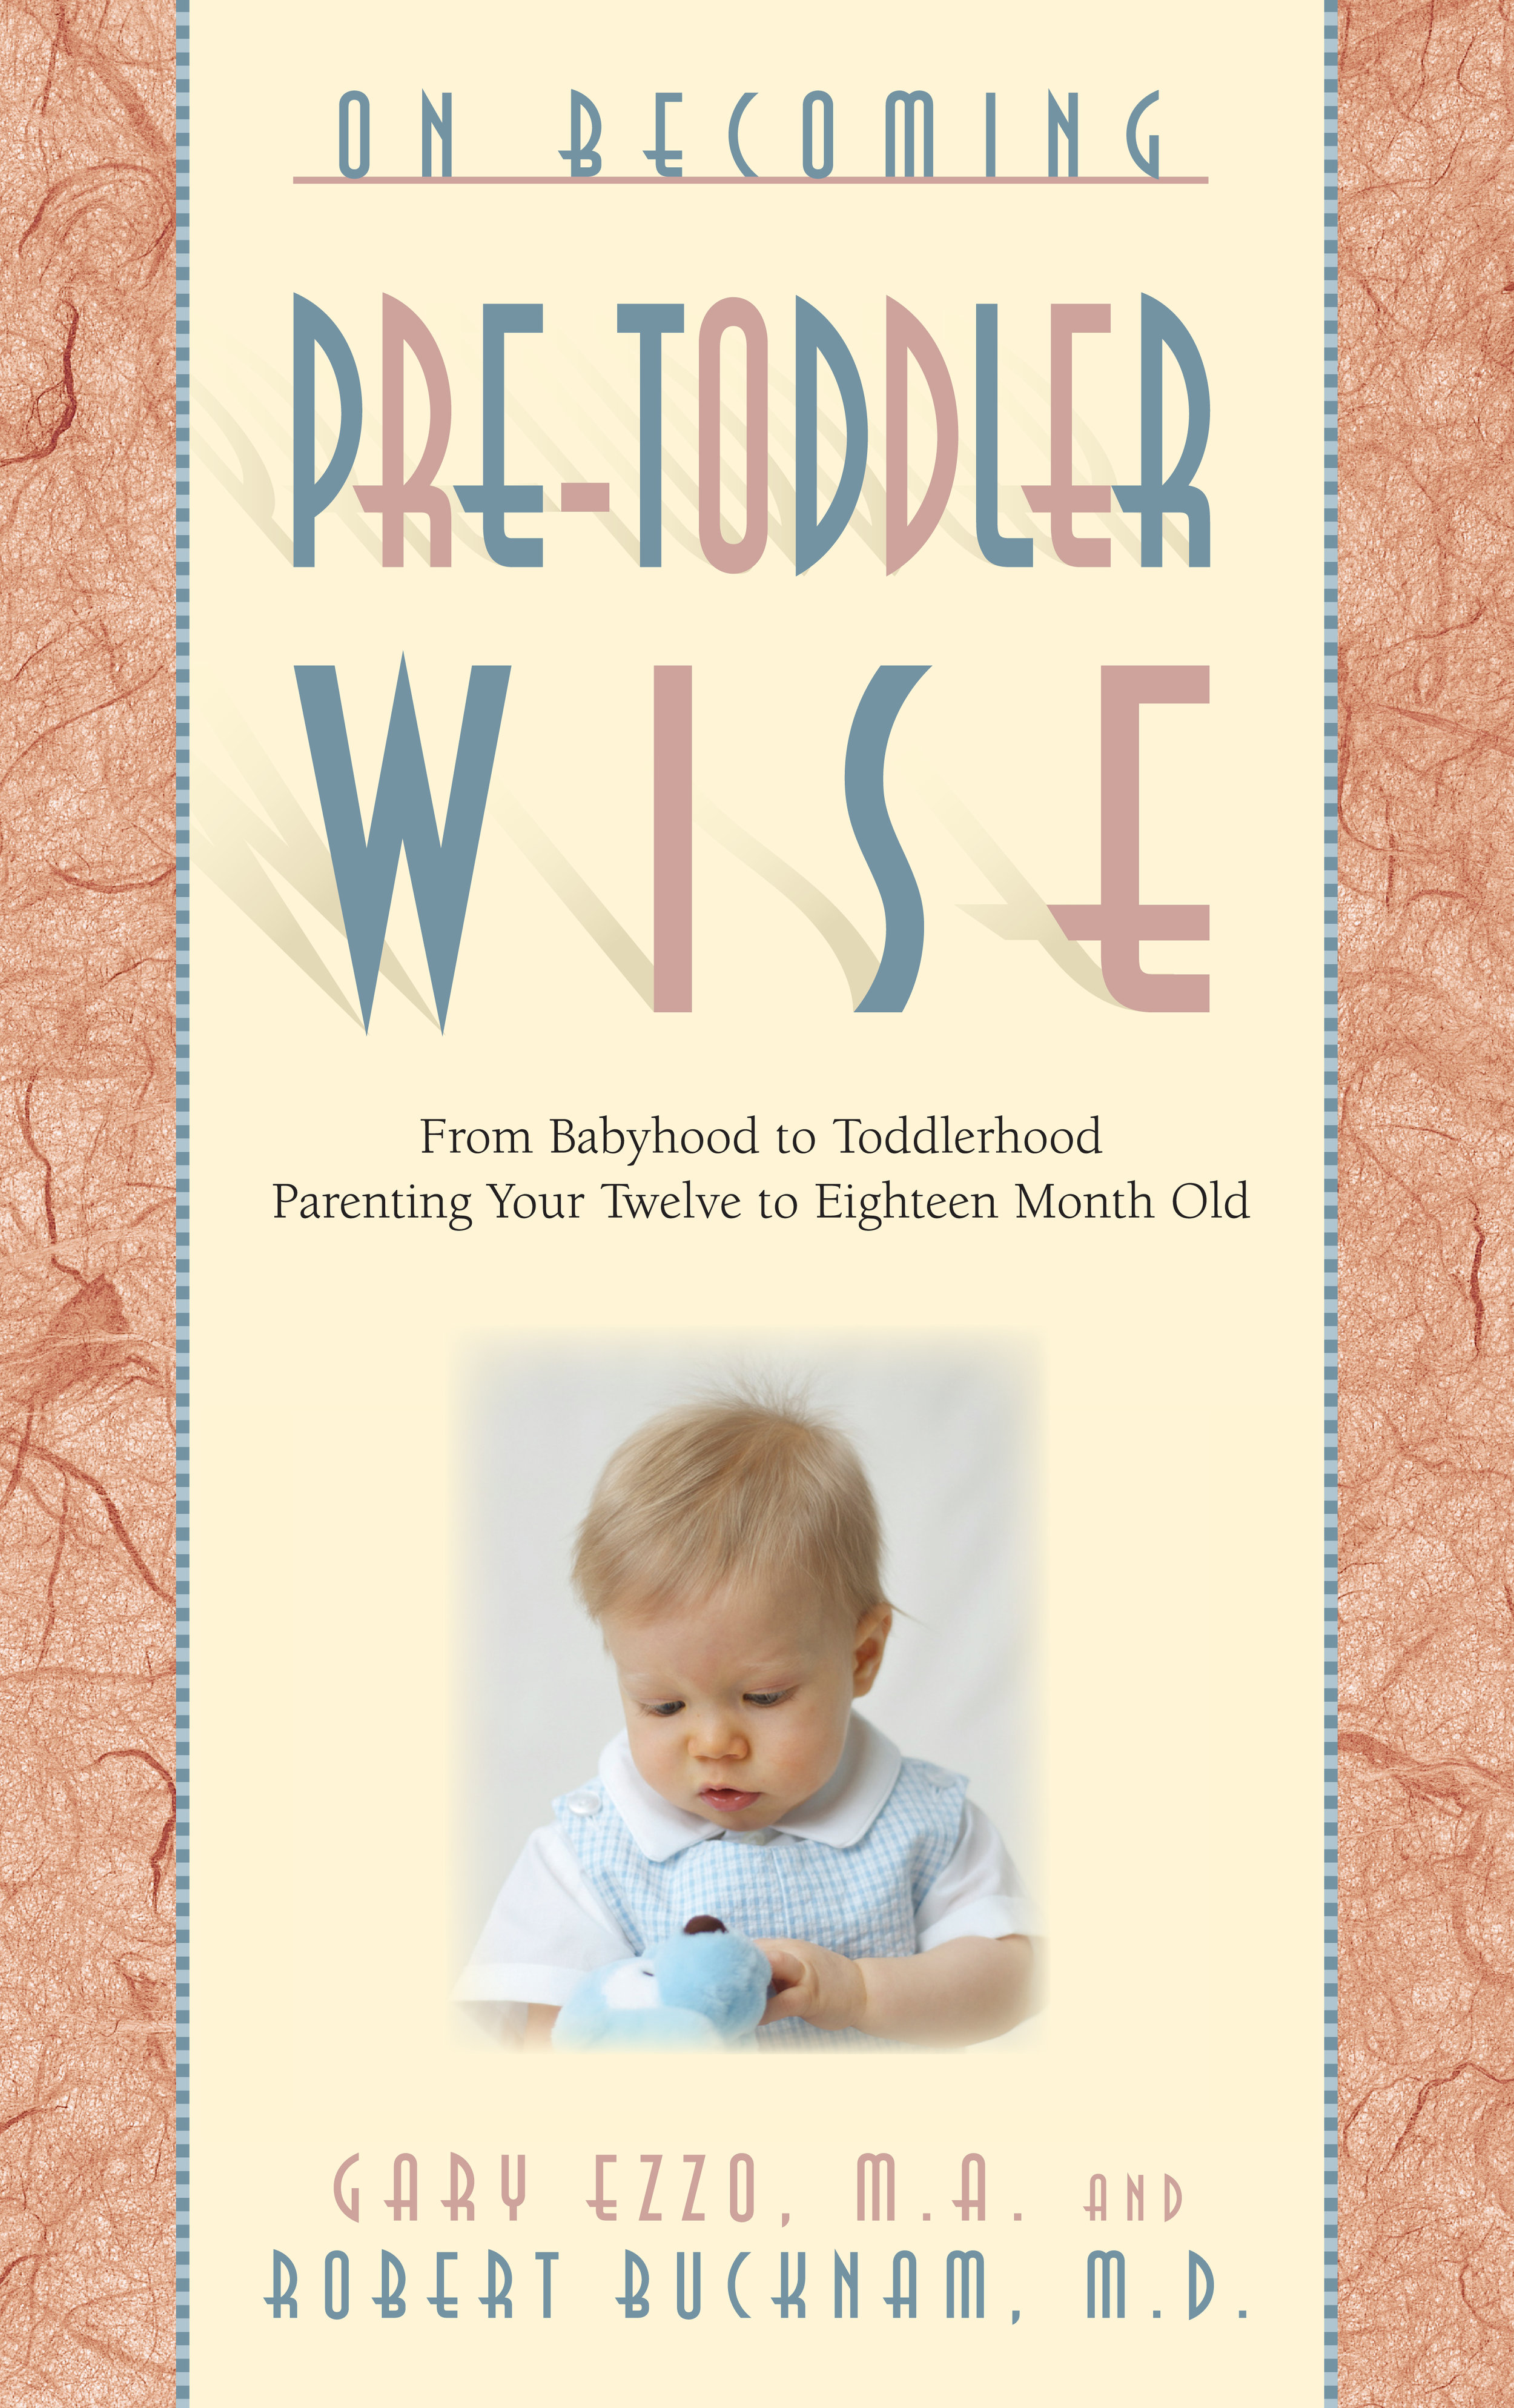 3003 On Becoming Pretoddlerwise Front Cover 600dpi copy 3.jpg